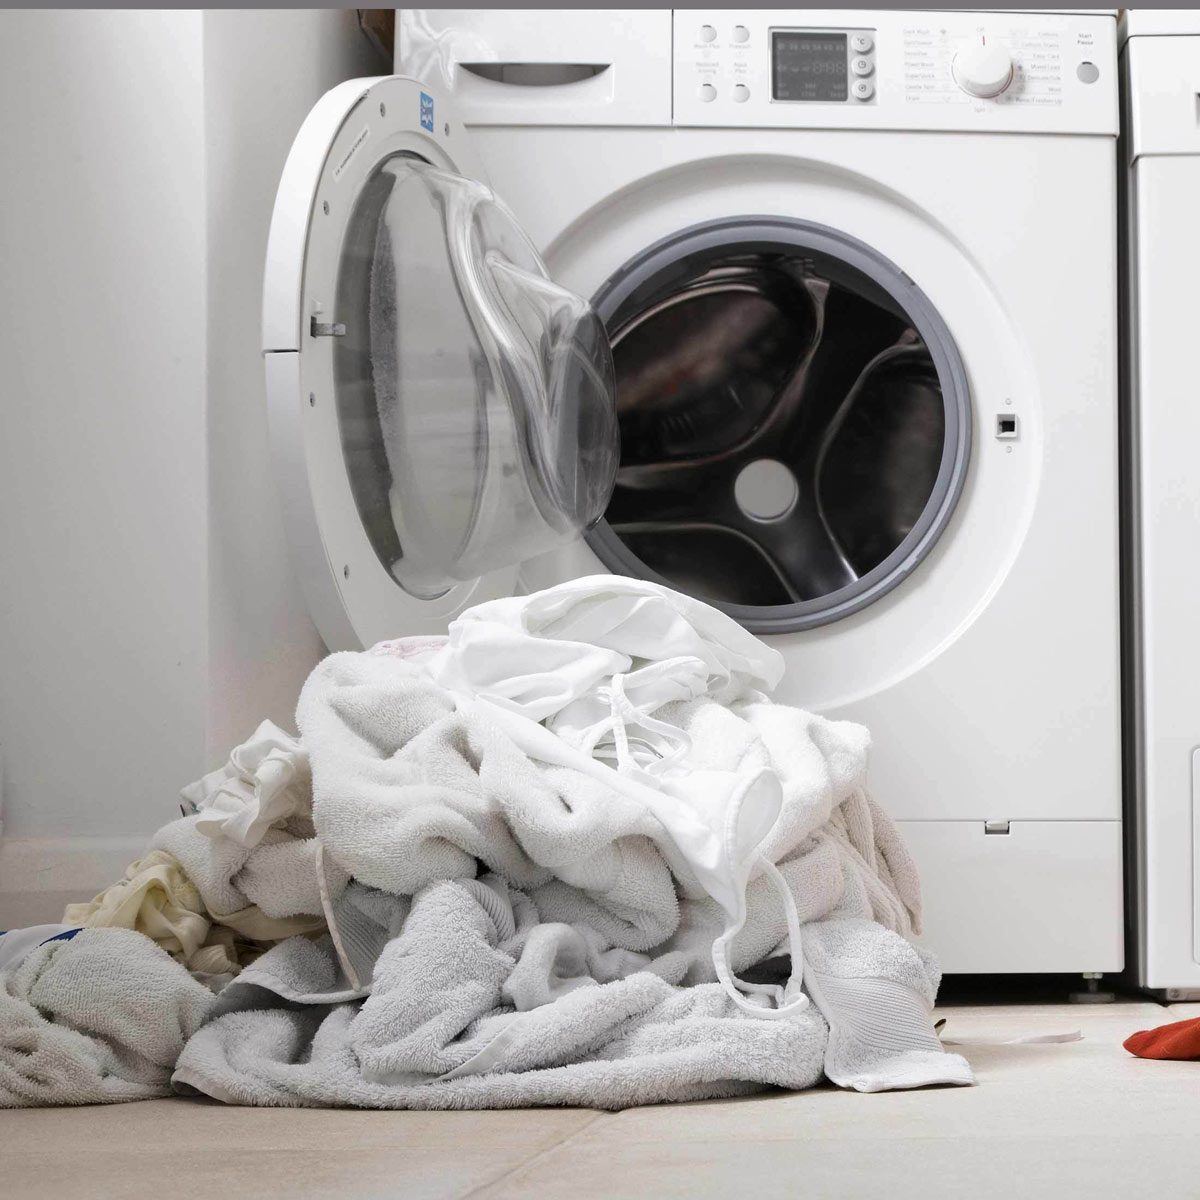 Clean Mold and Mildew from Clothes